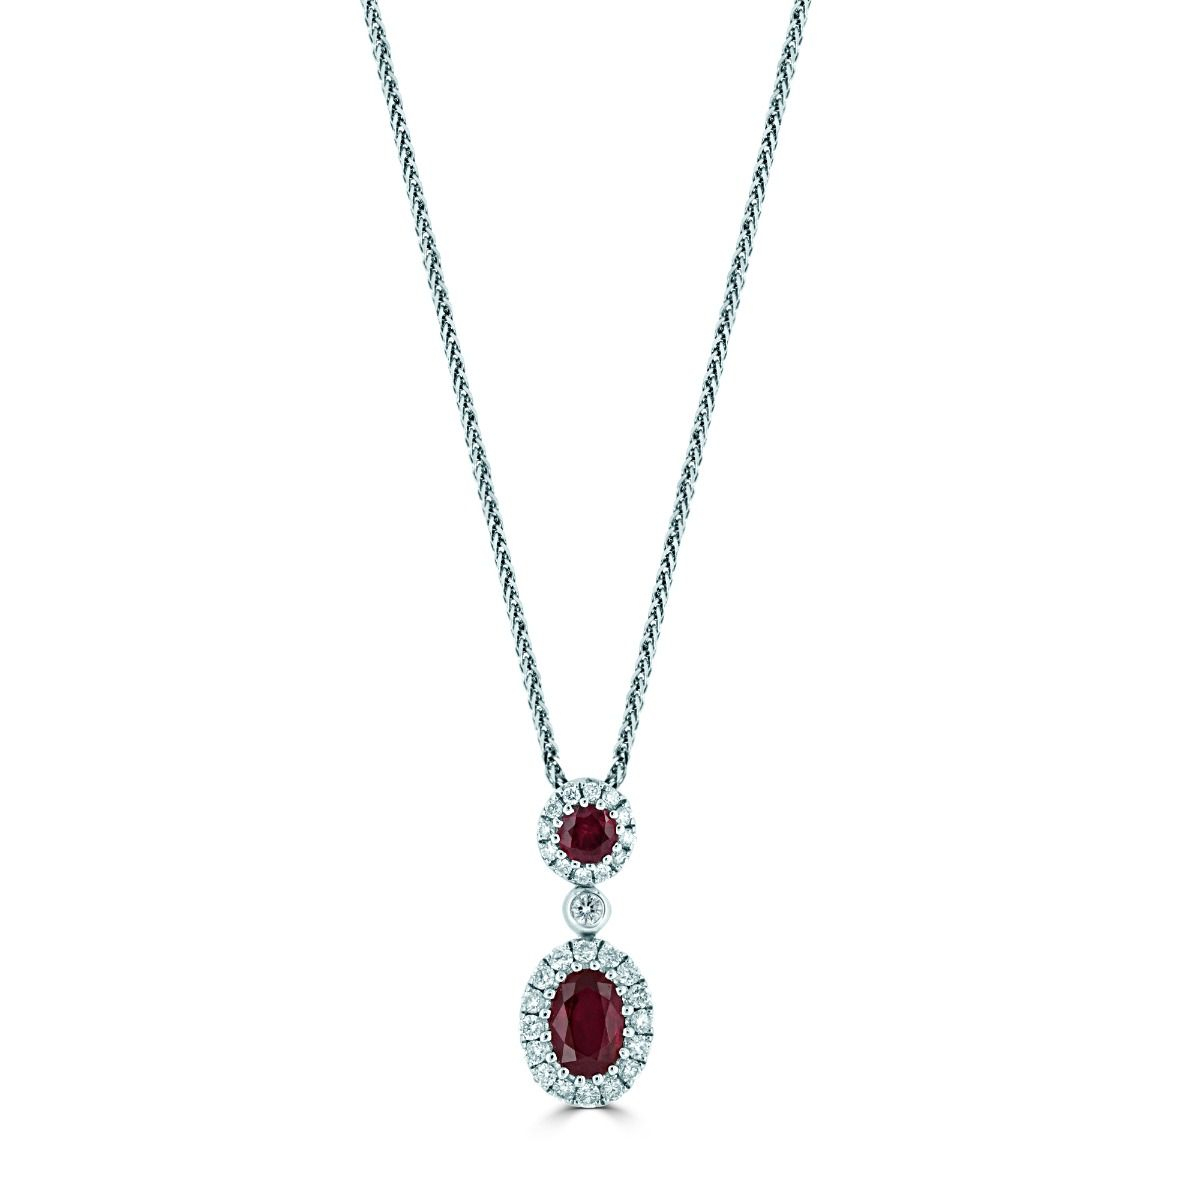 18ct White Gold Double Ruby And Diamond Cluster Drop Necklace Within 2020 Ruby And Diamond Cluster Necklaces (View 10 of 25)